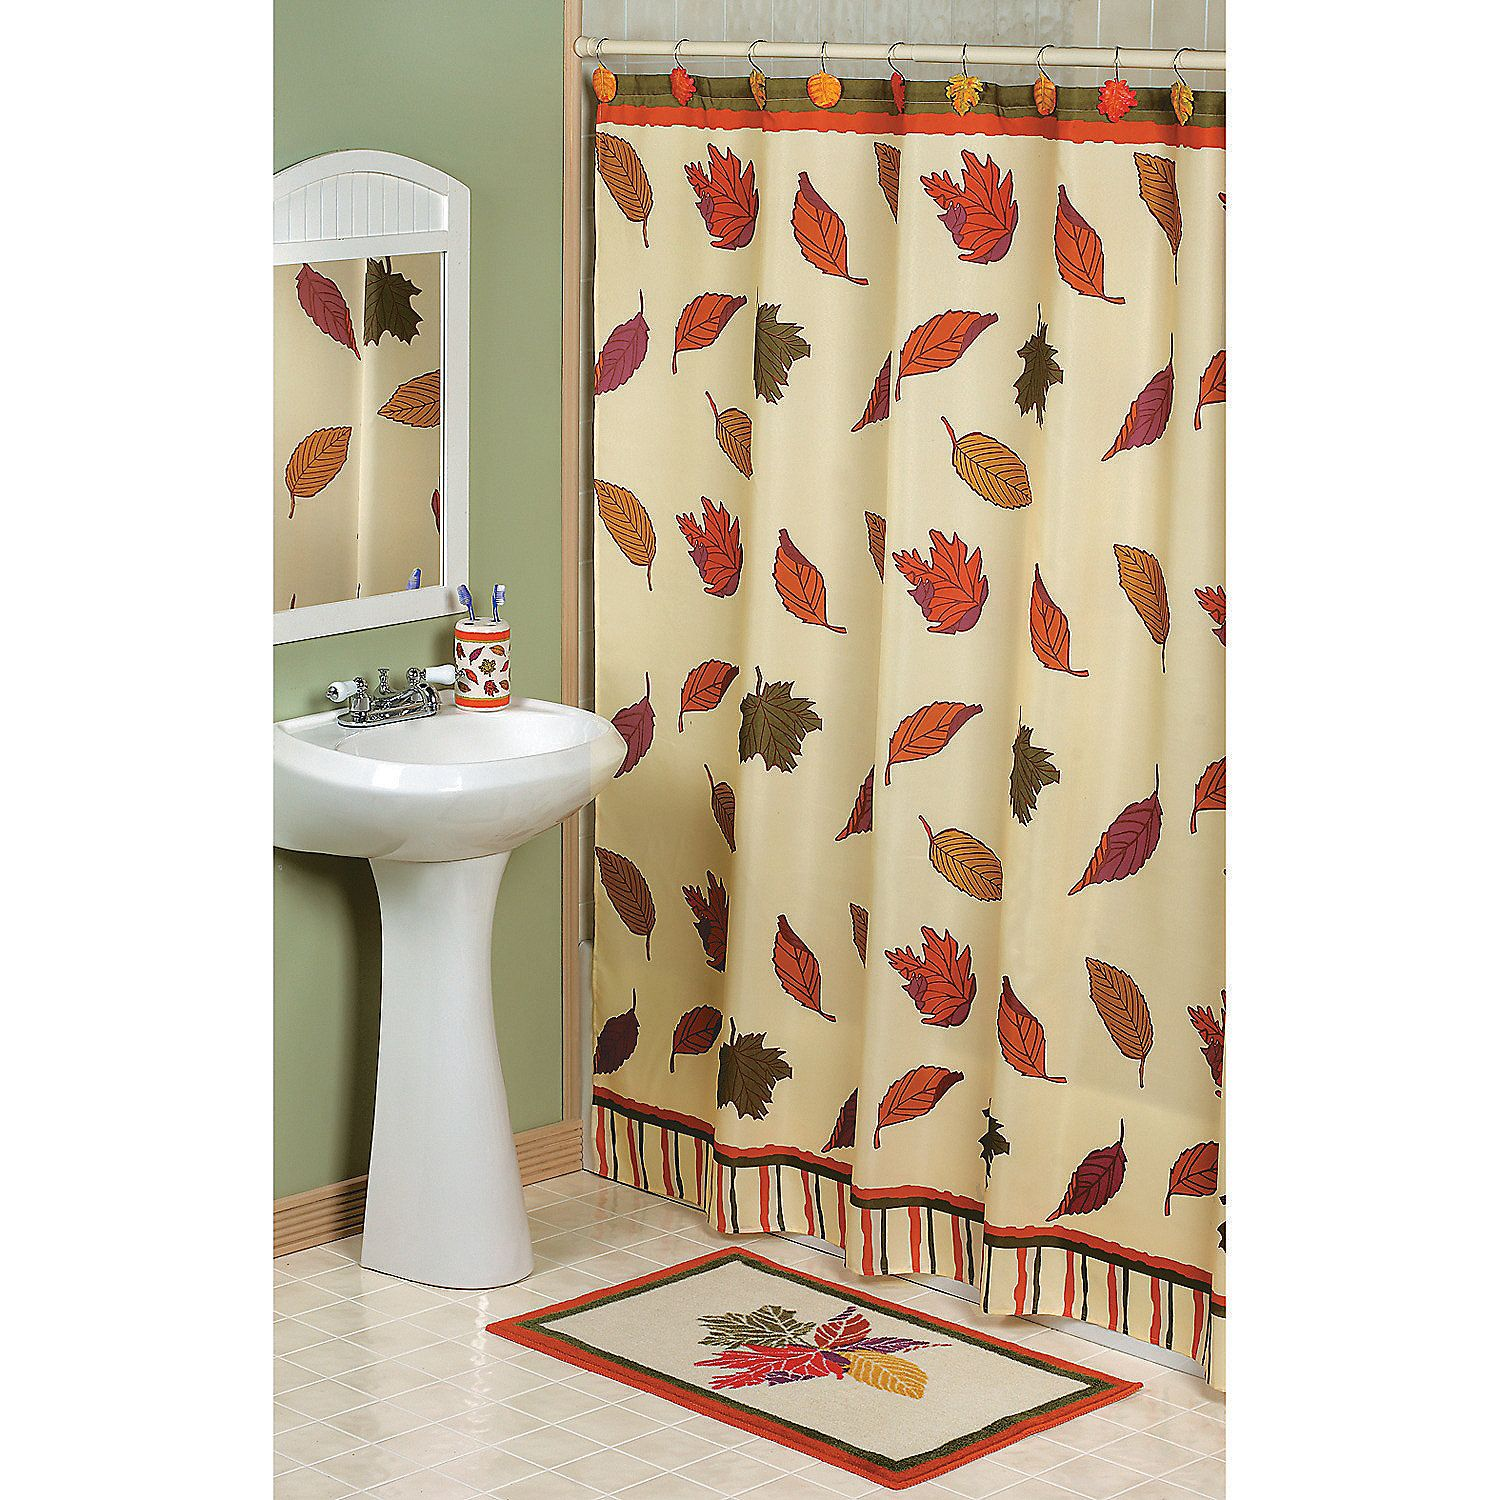 Fall Leaves Shower Curtain Fall Shower Curtain Beautiful Bathrooms Fall Decor